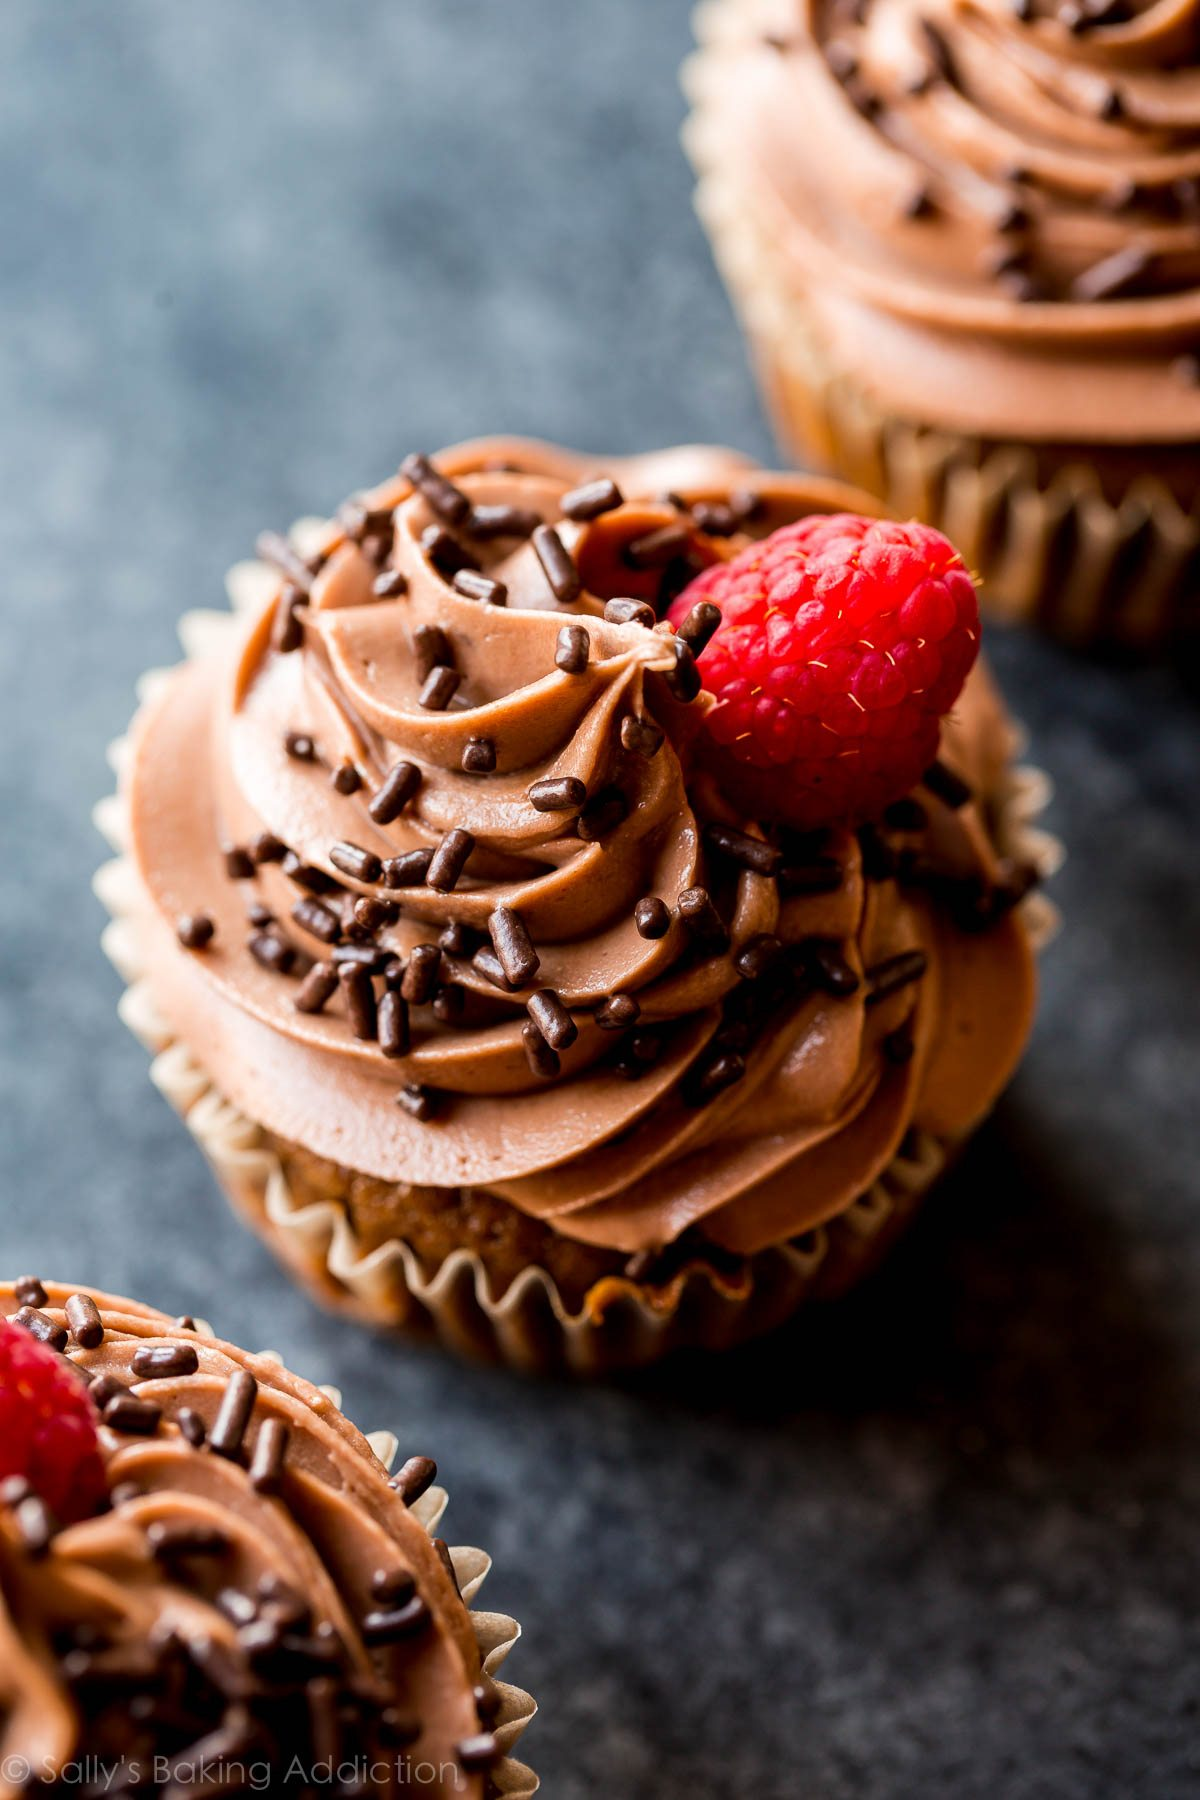 Soft, fluffy, and moist mocha nutella cupcakes! This frosting is unreal. So good! Recipe on sallysbakingaddiction.com